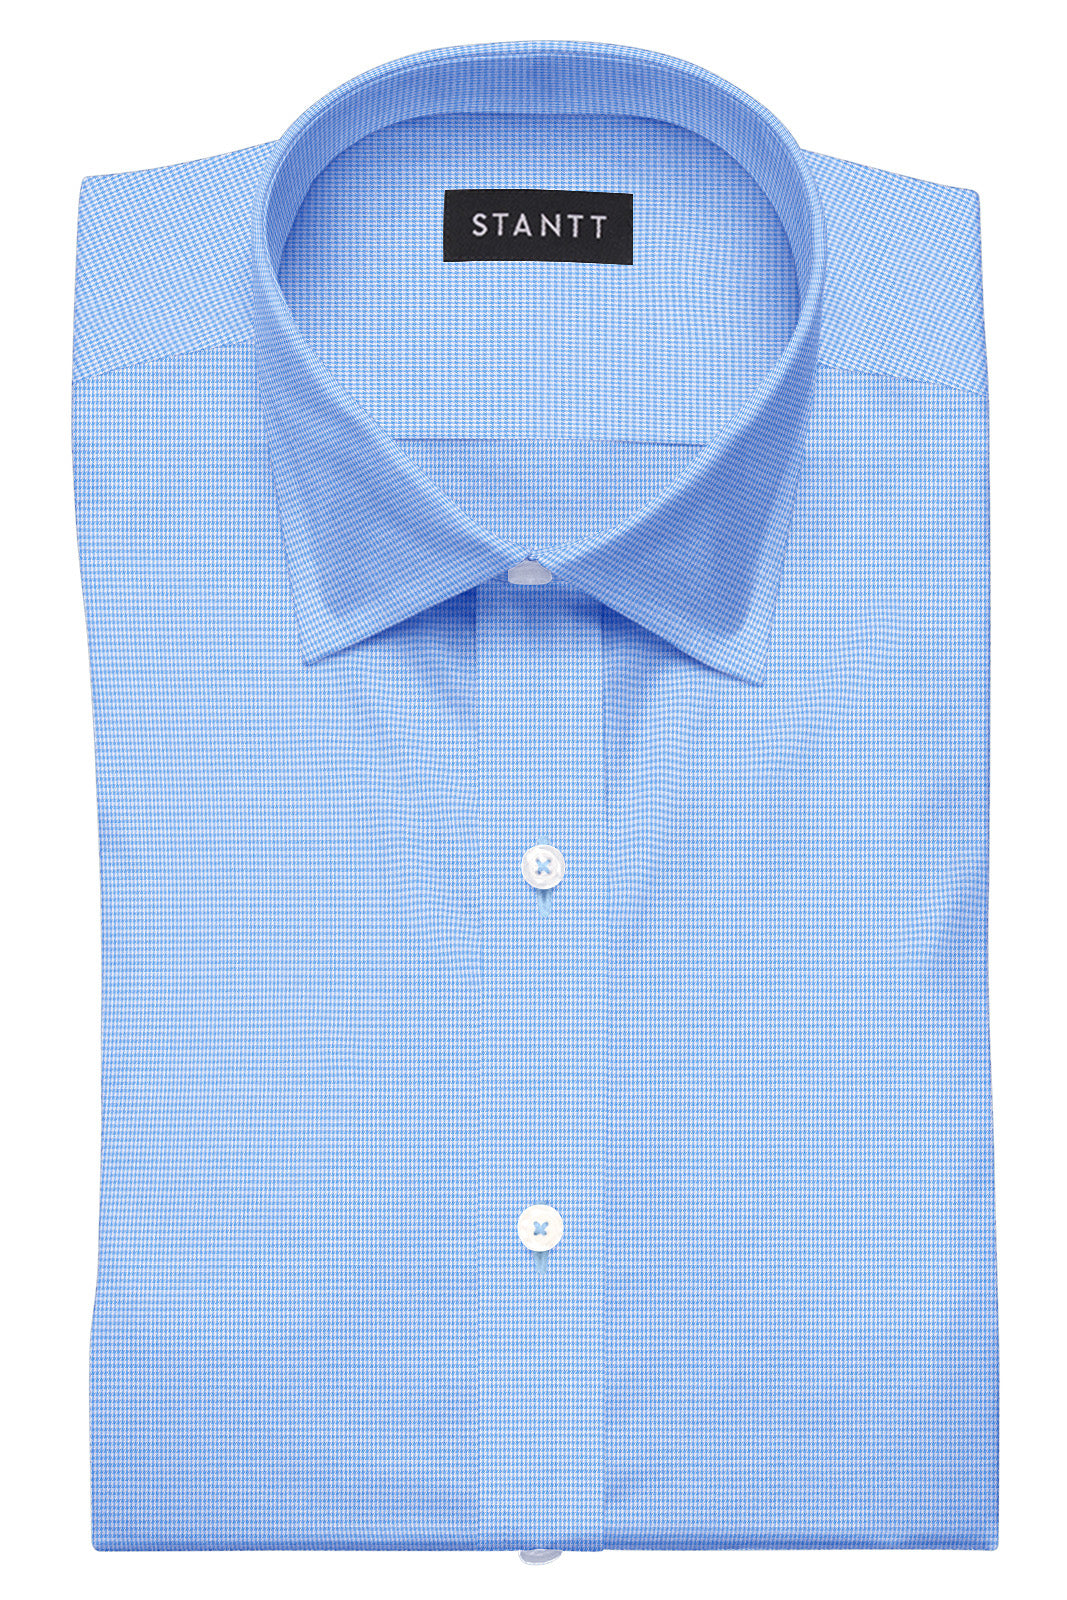 Wrinkle-Resistant French Blue Houndstooth: Semi-Spread Collar, Barrel Cuff